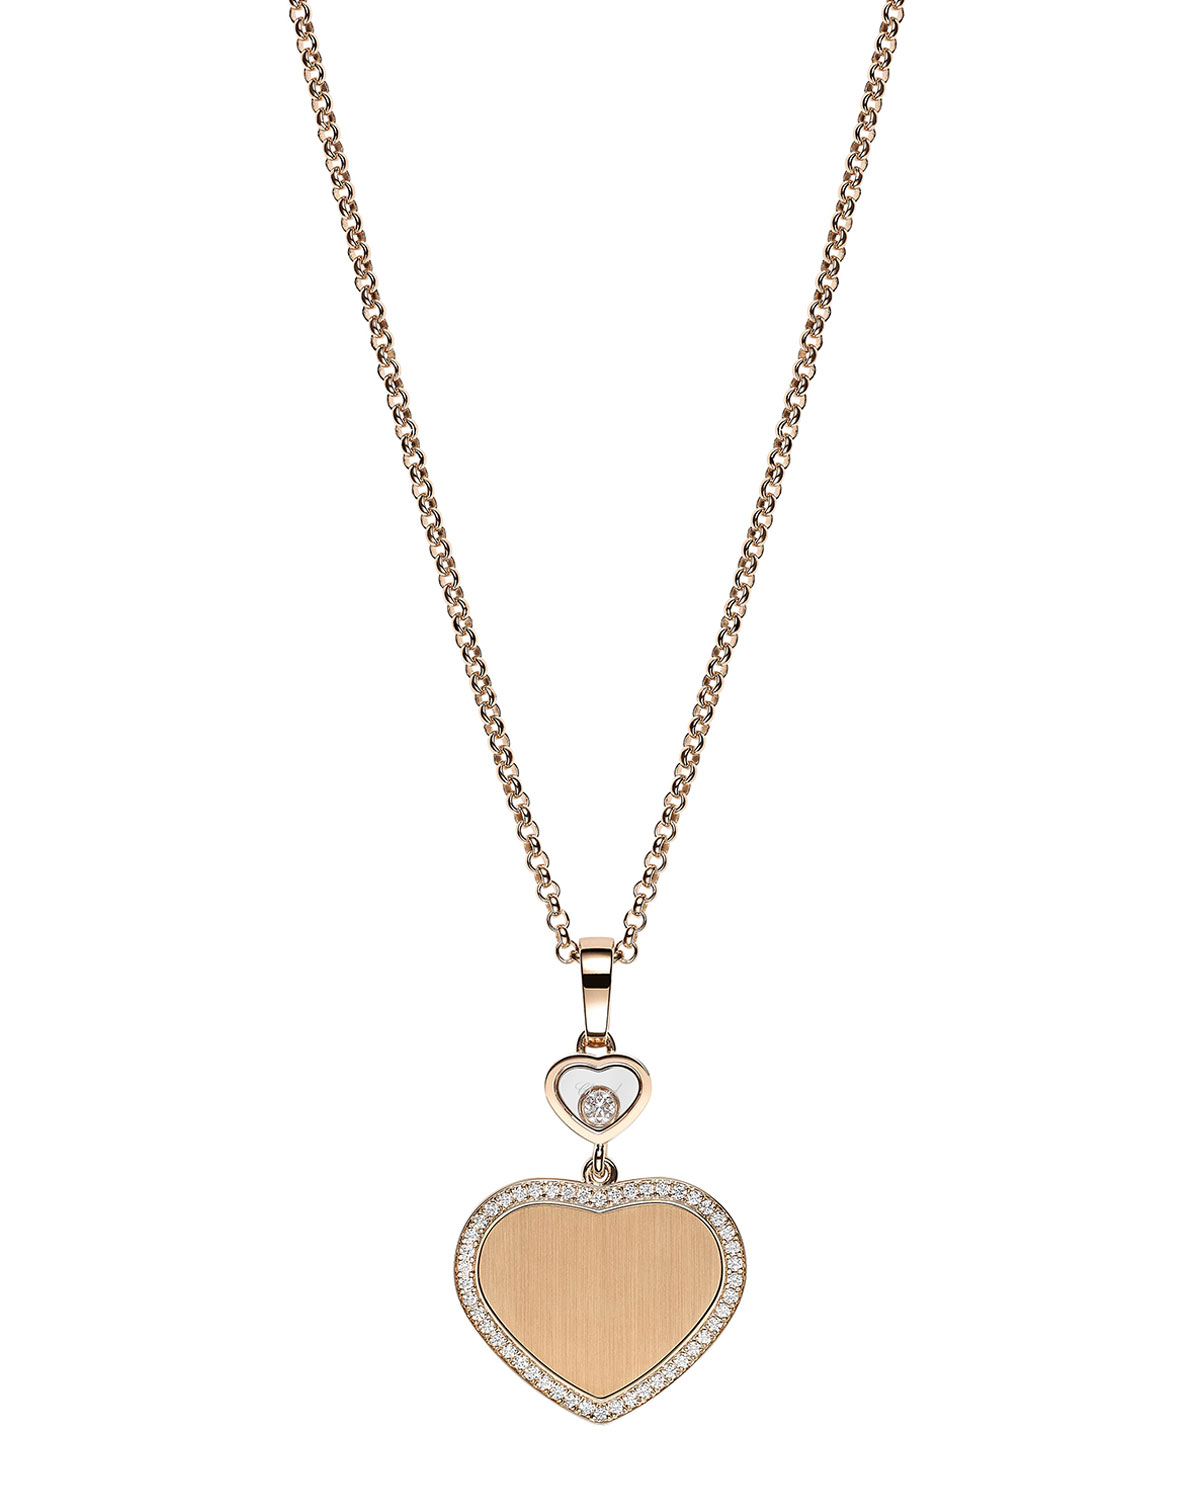 Happy Hearts 18k Rose Gold Pendant Necklace with Diamond and Pave